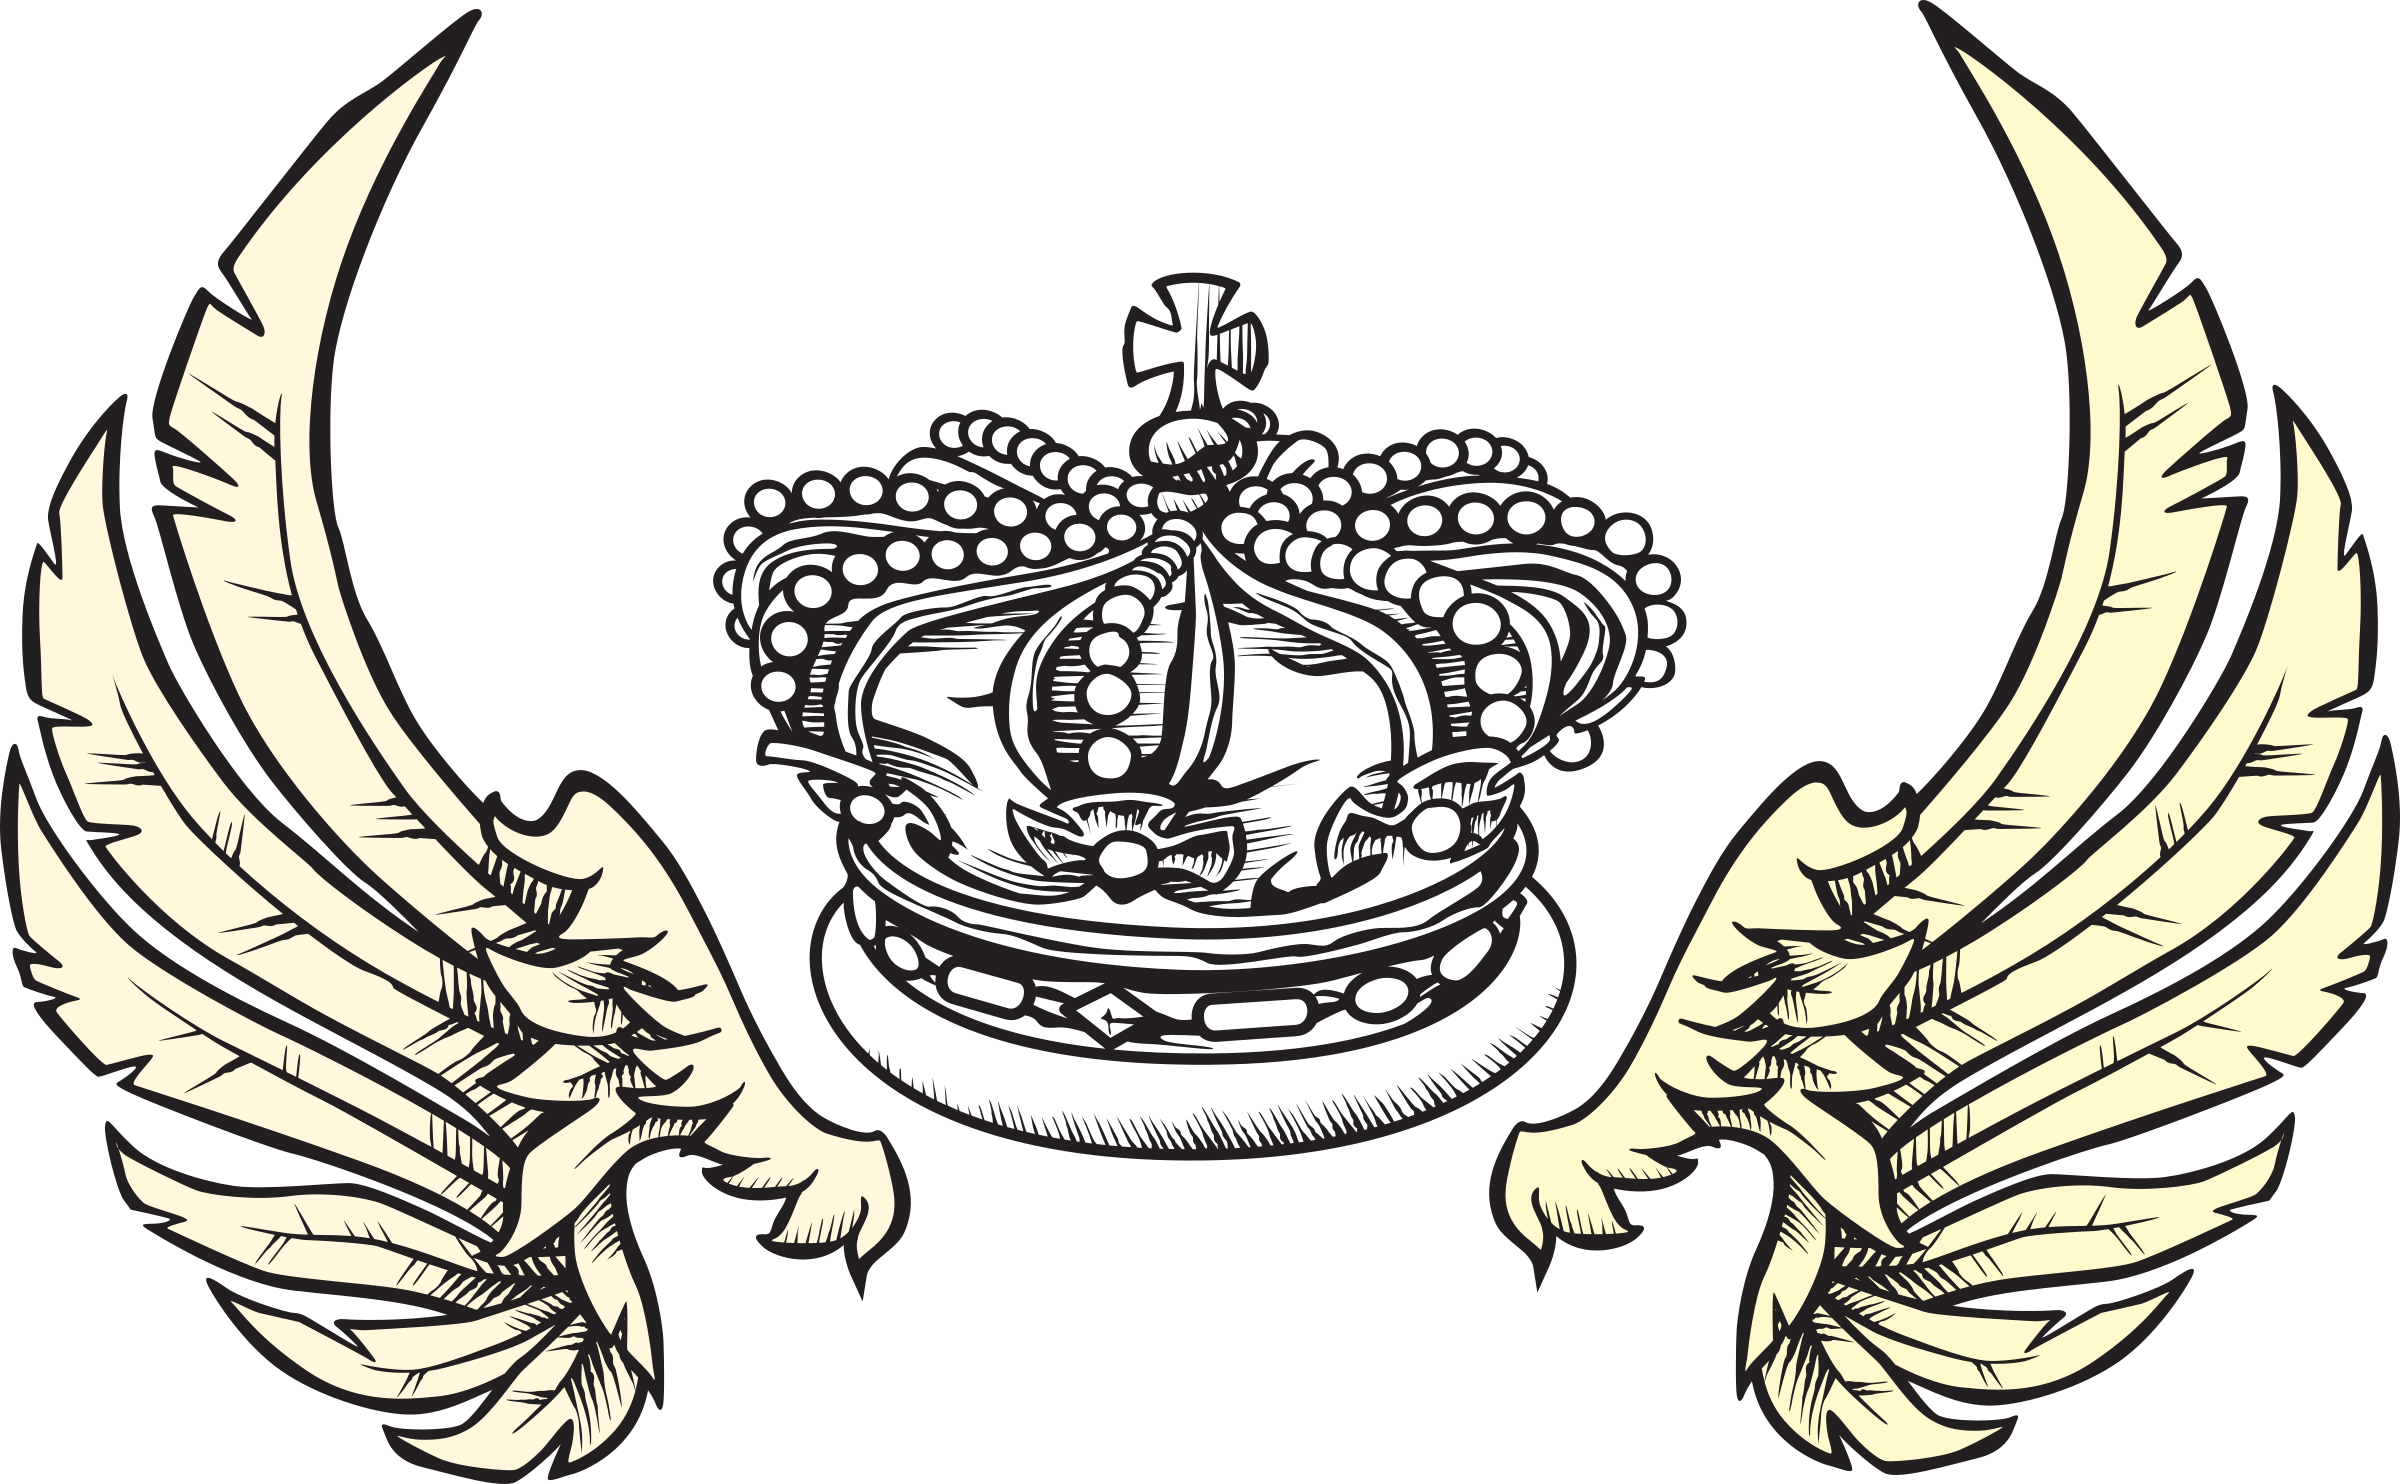 And wings big image. Wing clipart crown